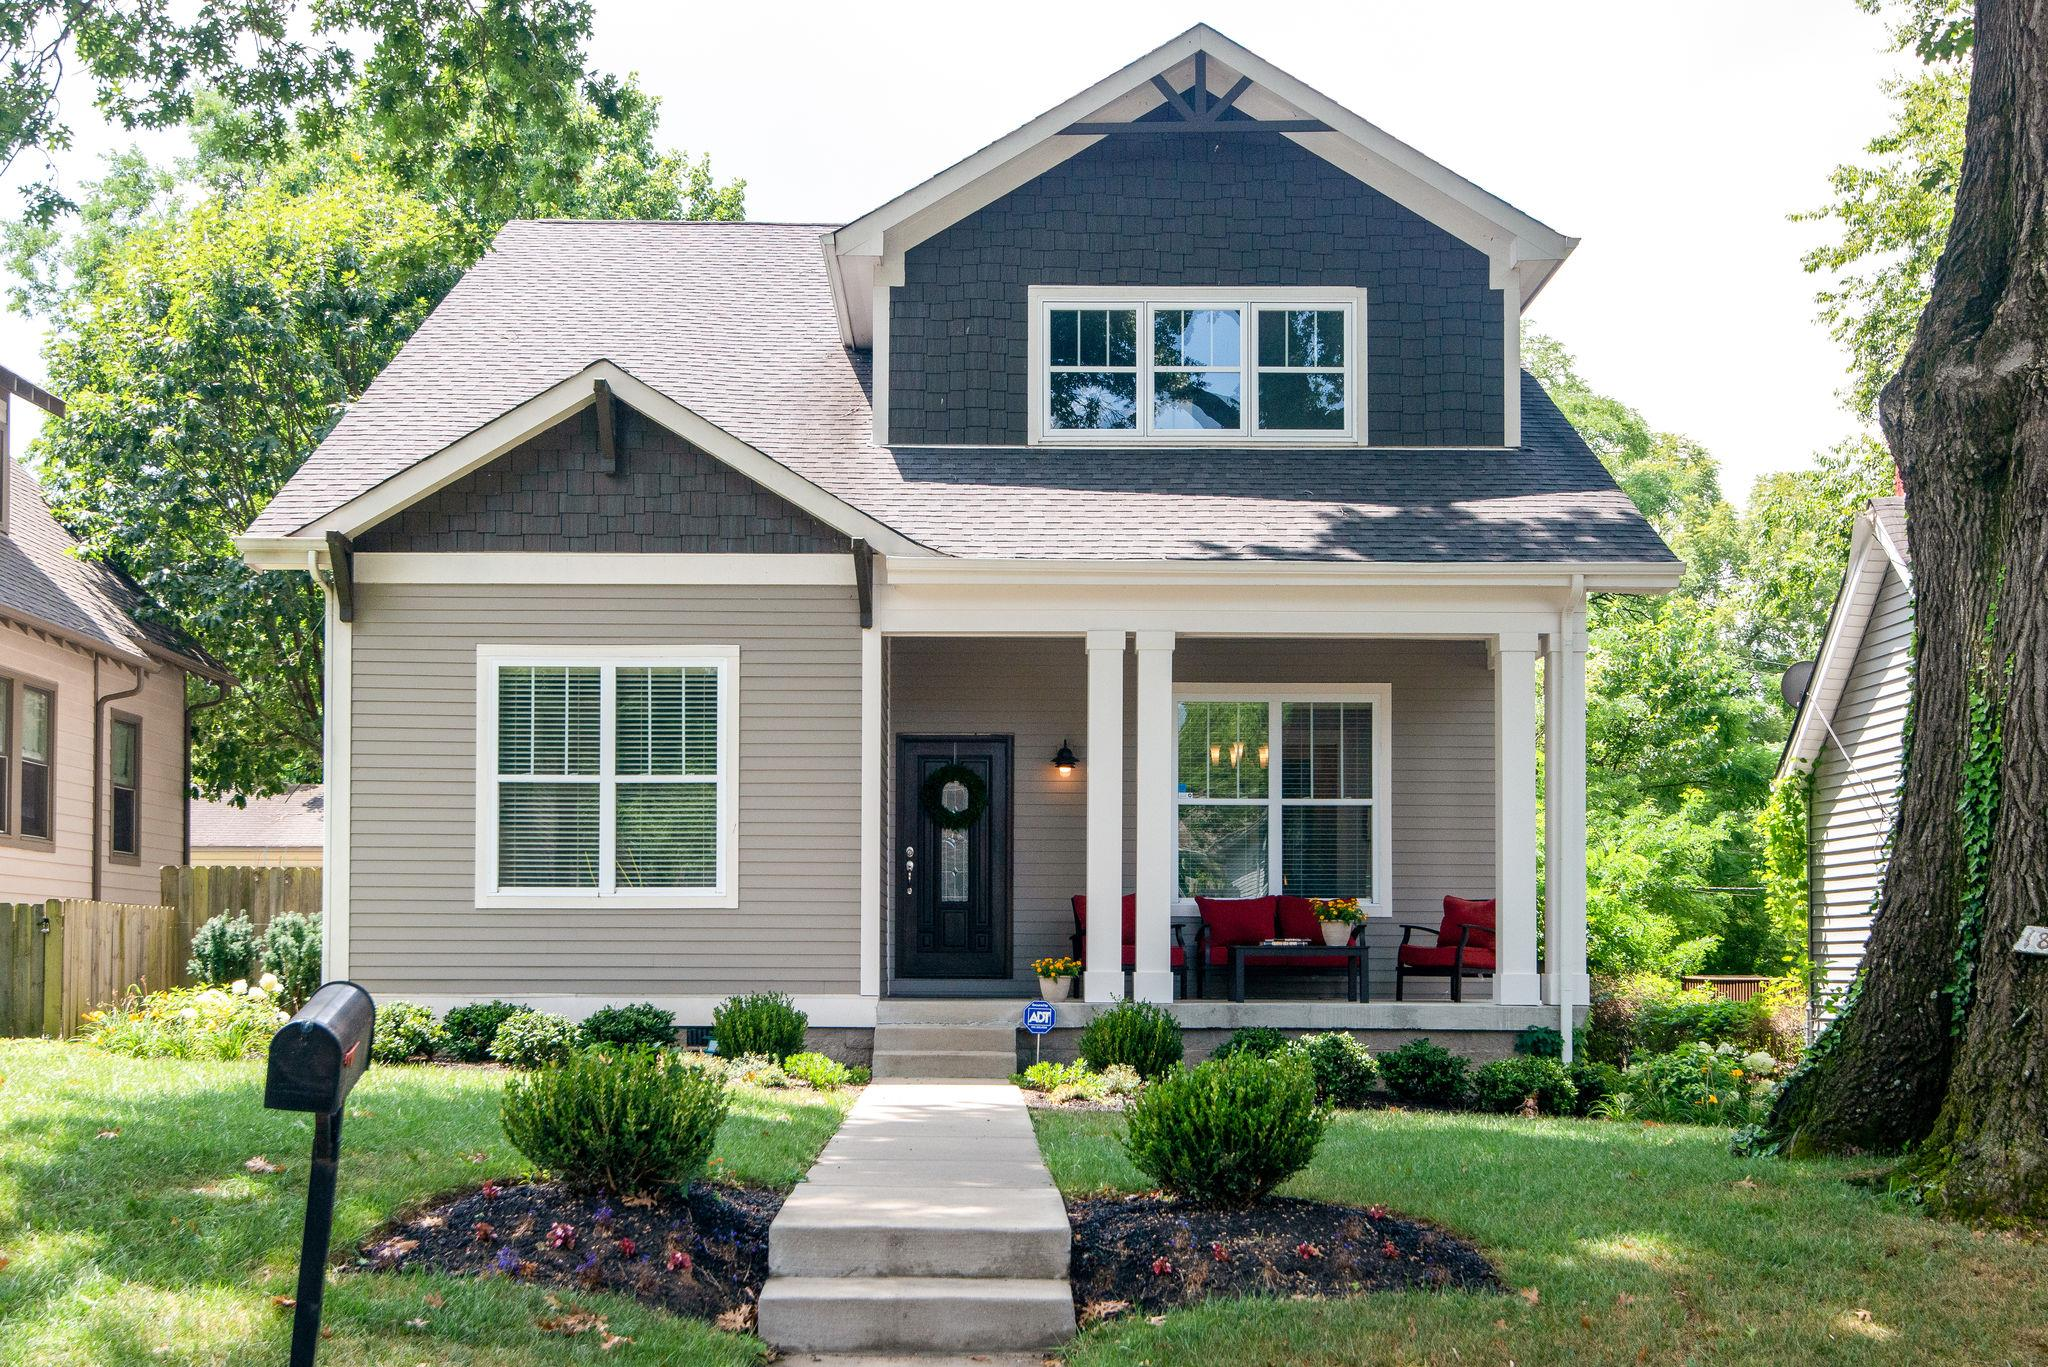 1808 Eastside Ave, Nashville, TN 37206 - Nashville, TN real estate listing